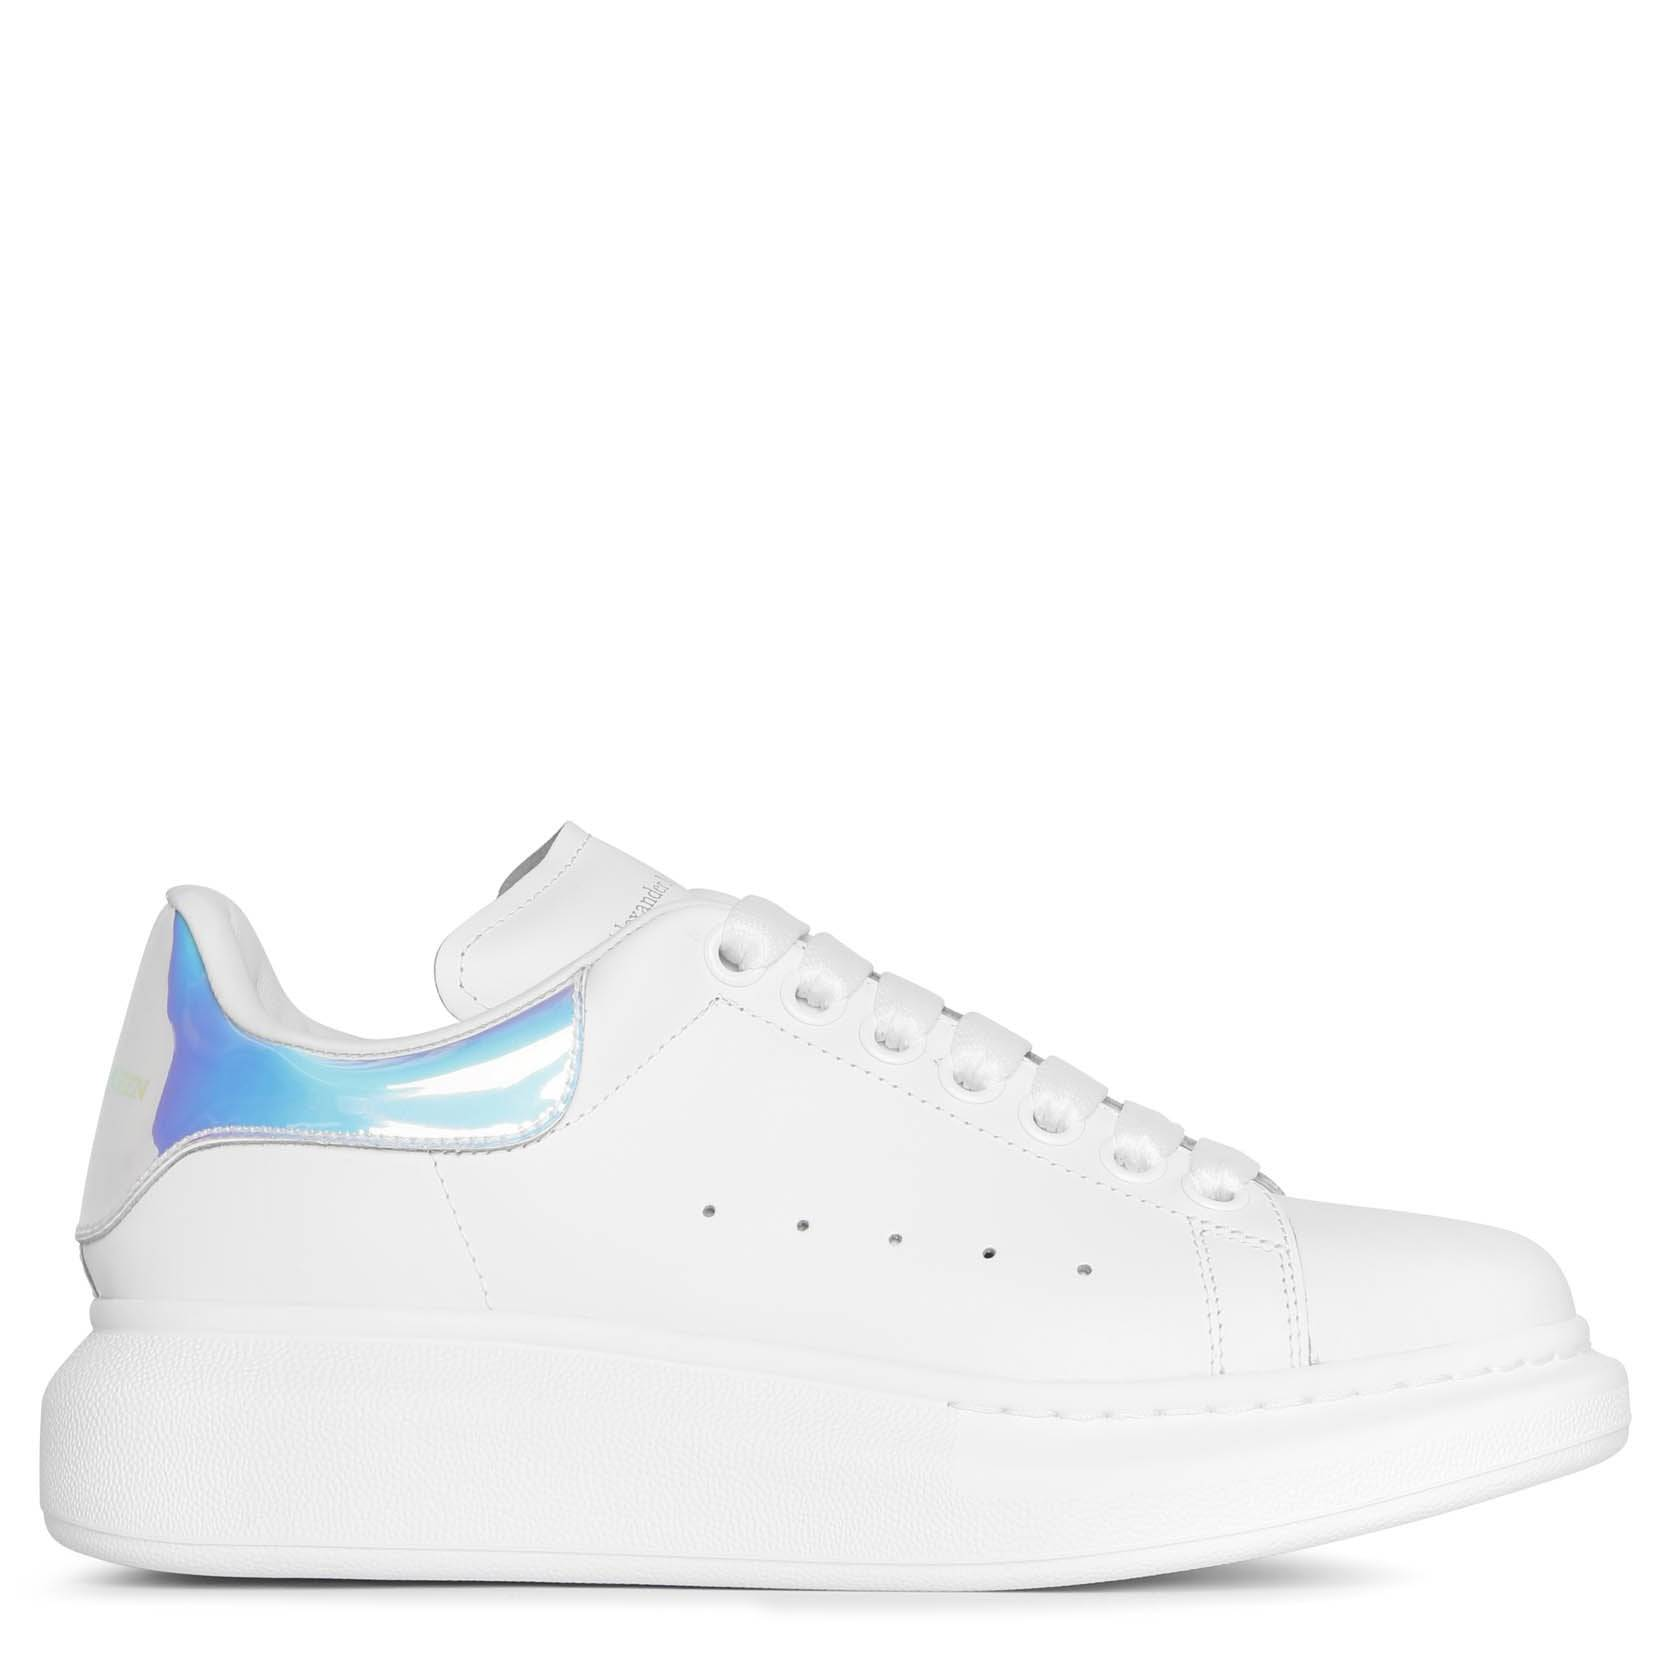 Alexander McQueen White and holographic classic sneakers  - white/pink - female - Size: 37